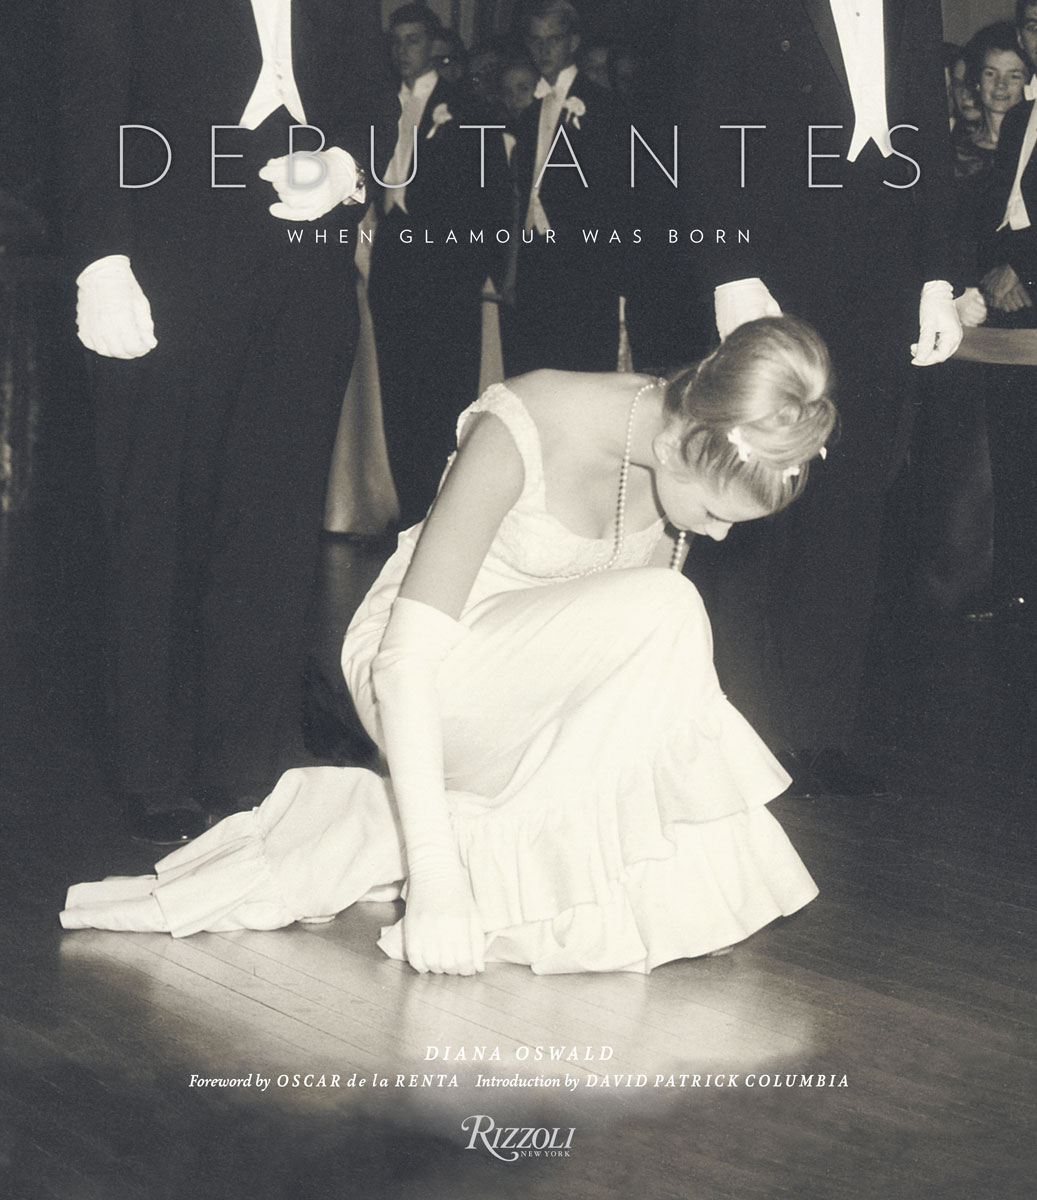 Debutantes_cover-required-to-include.jpg